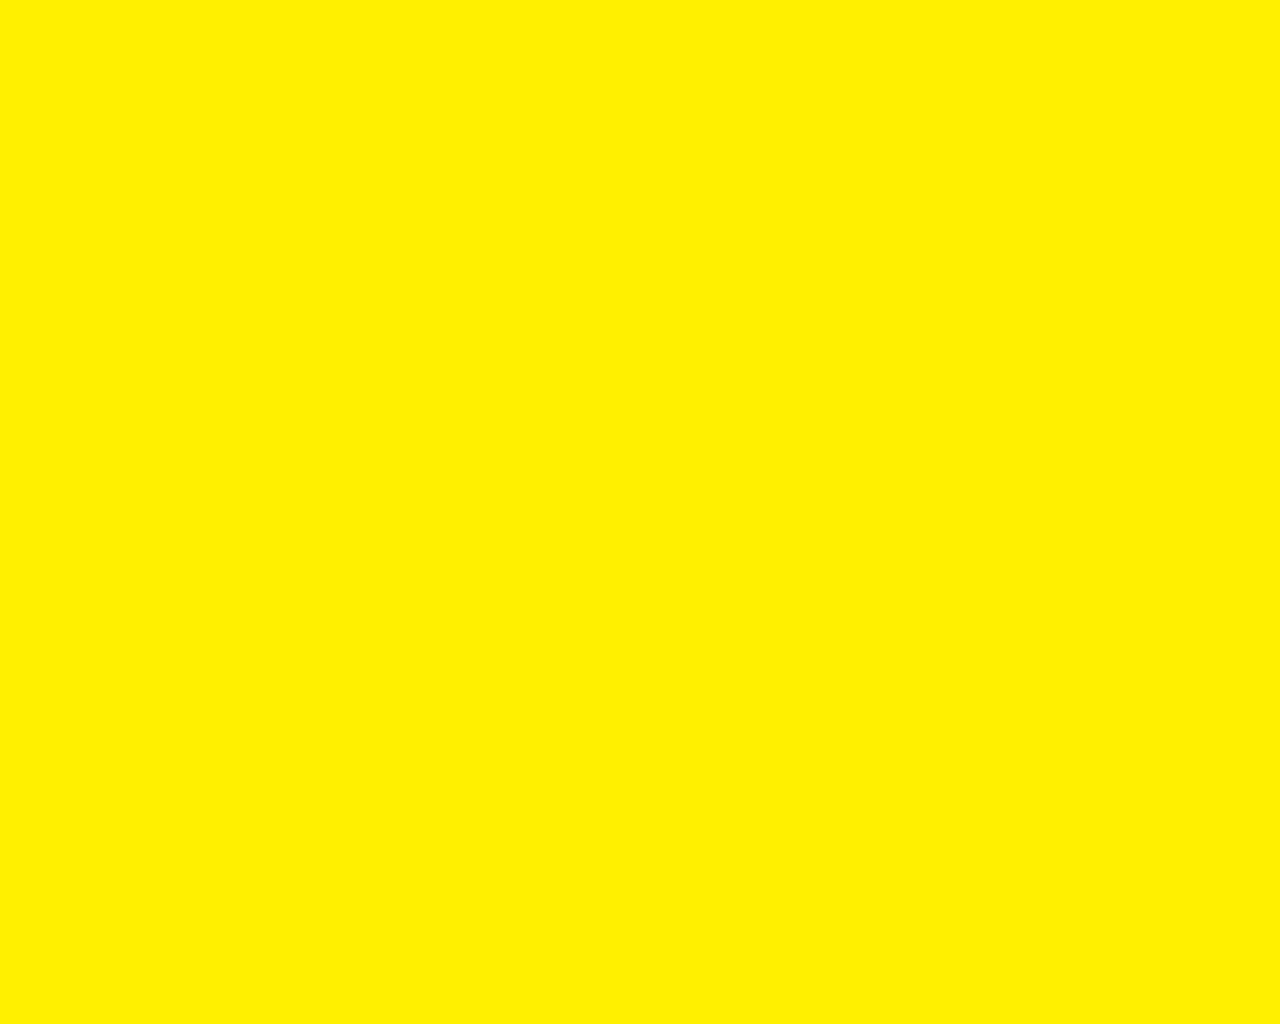 1280x1024 Yellow Rose Solid Color Background